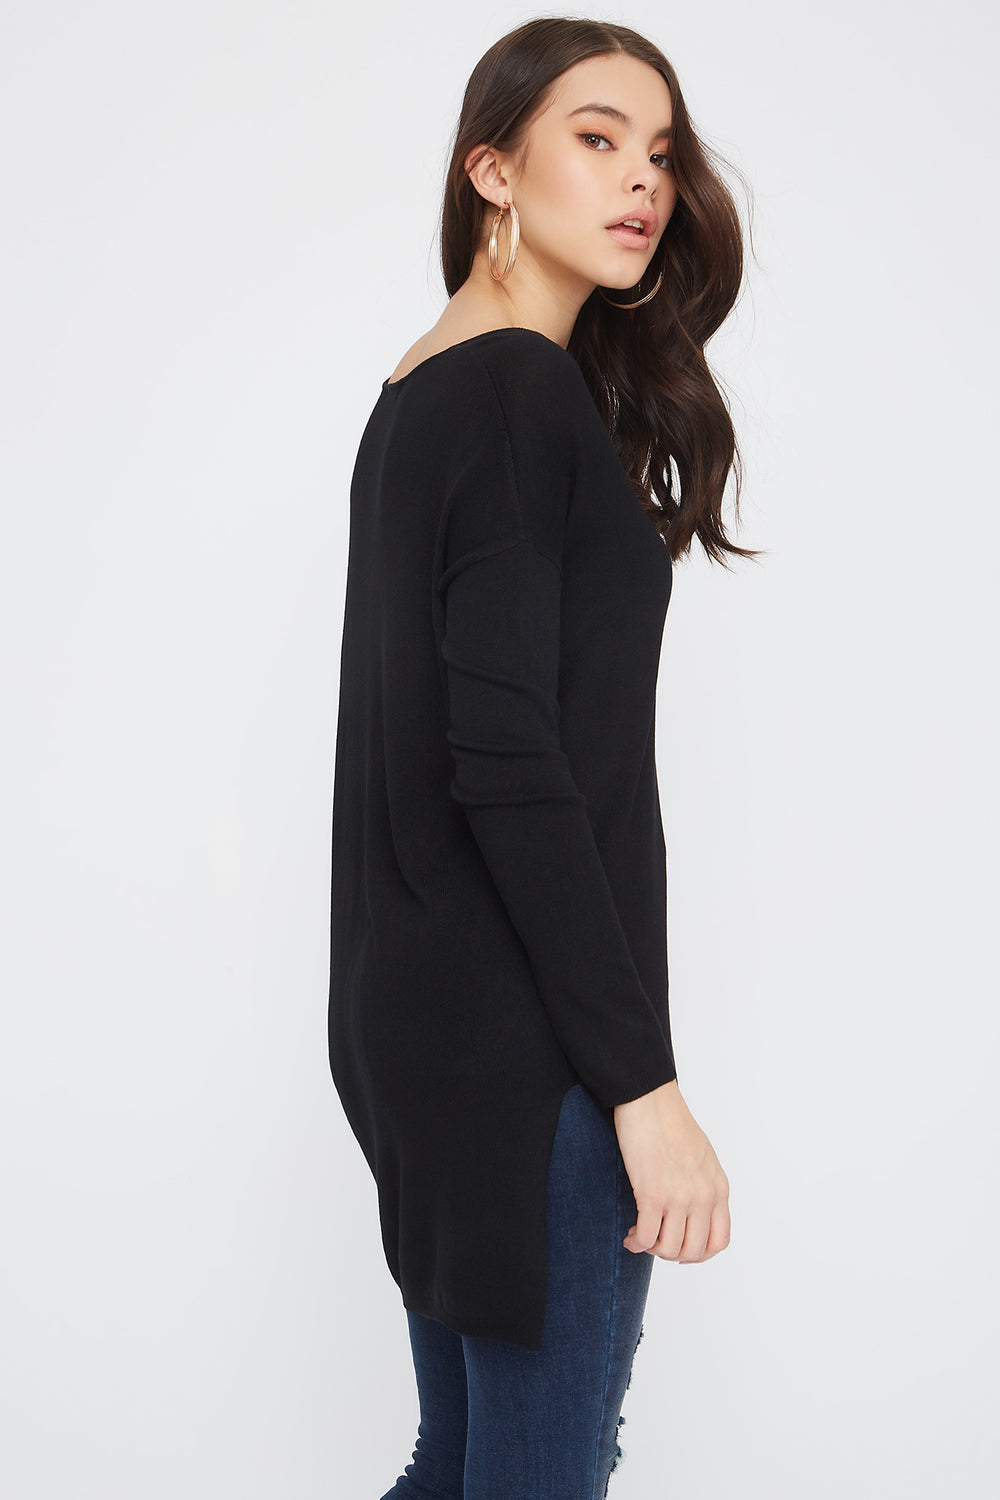 Knit V-Neck High-Low Long Sleeve Black